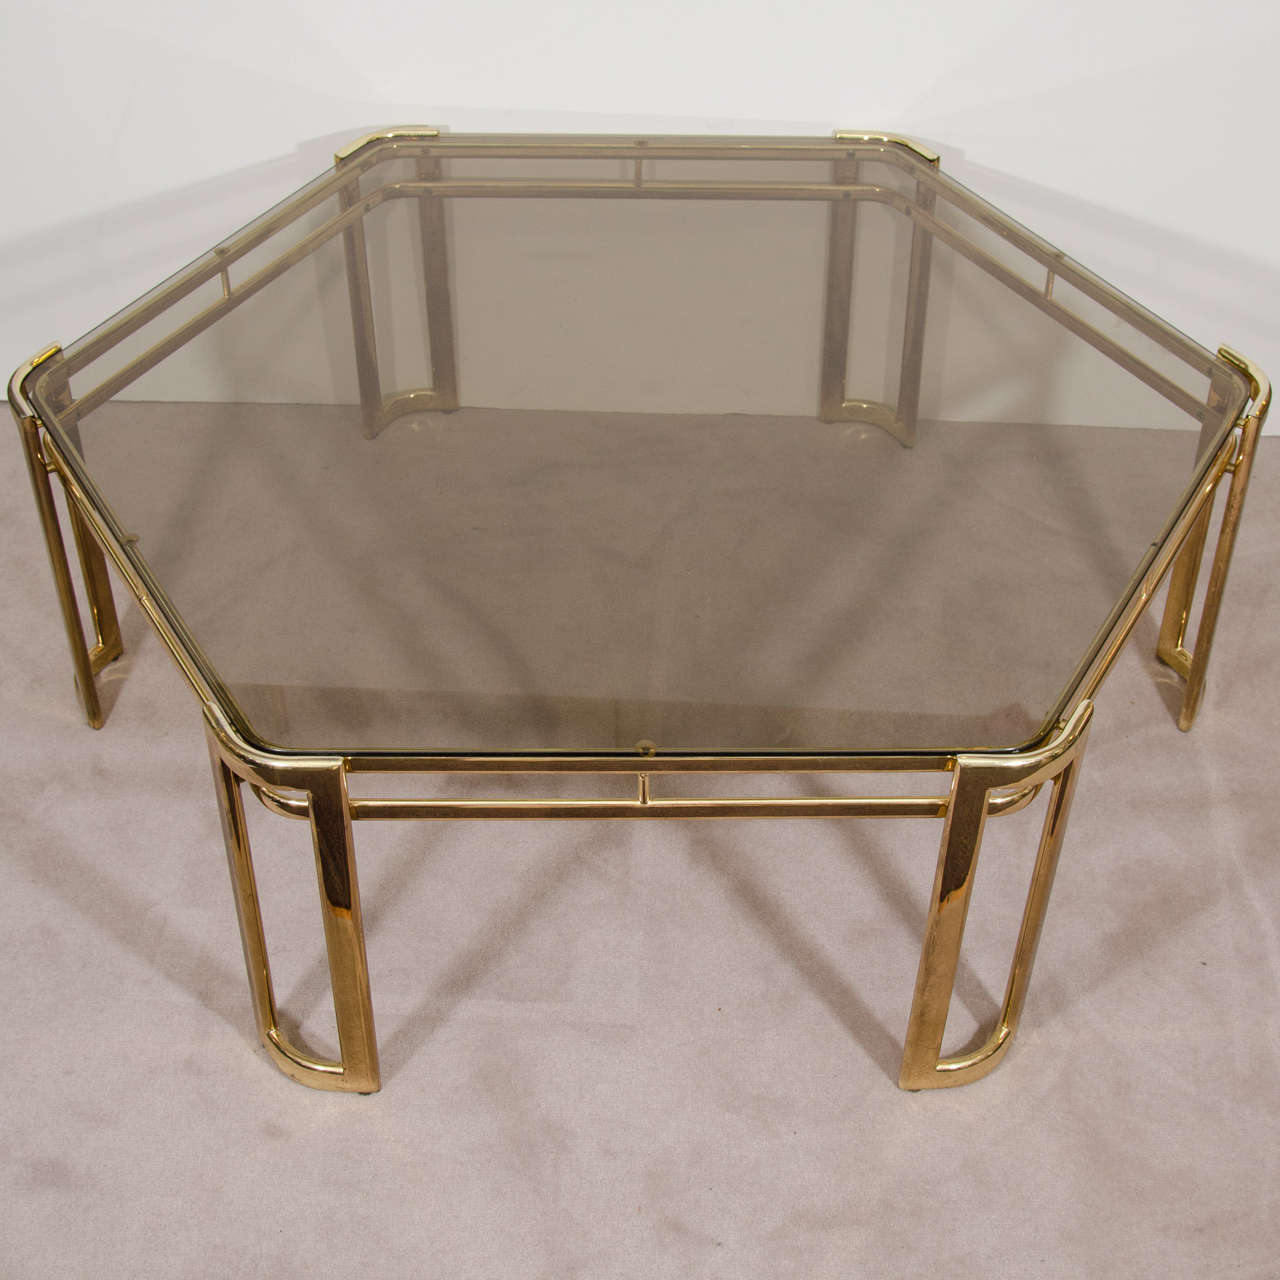 20th Century Midcentury Brass-Plated Hexagonal Coffee or Cocktail Table For Sale